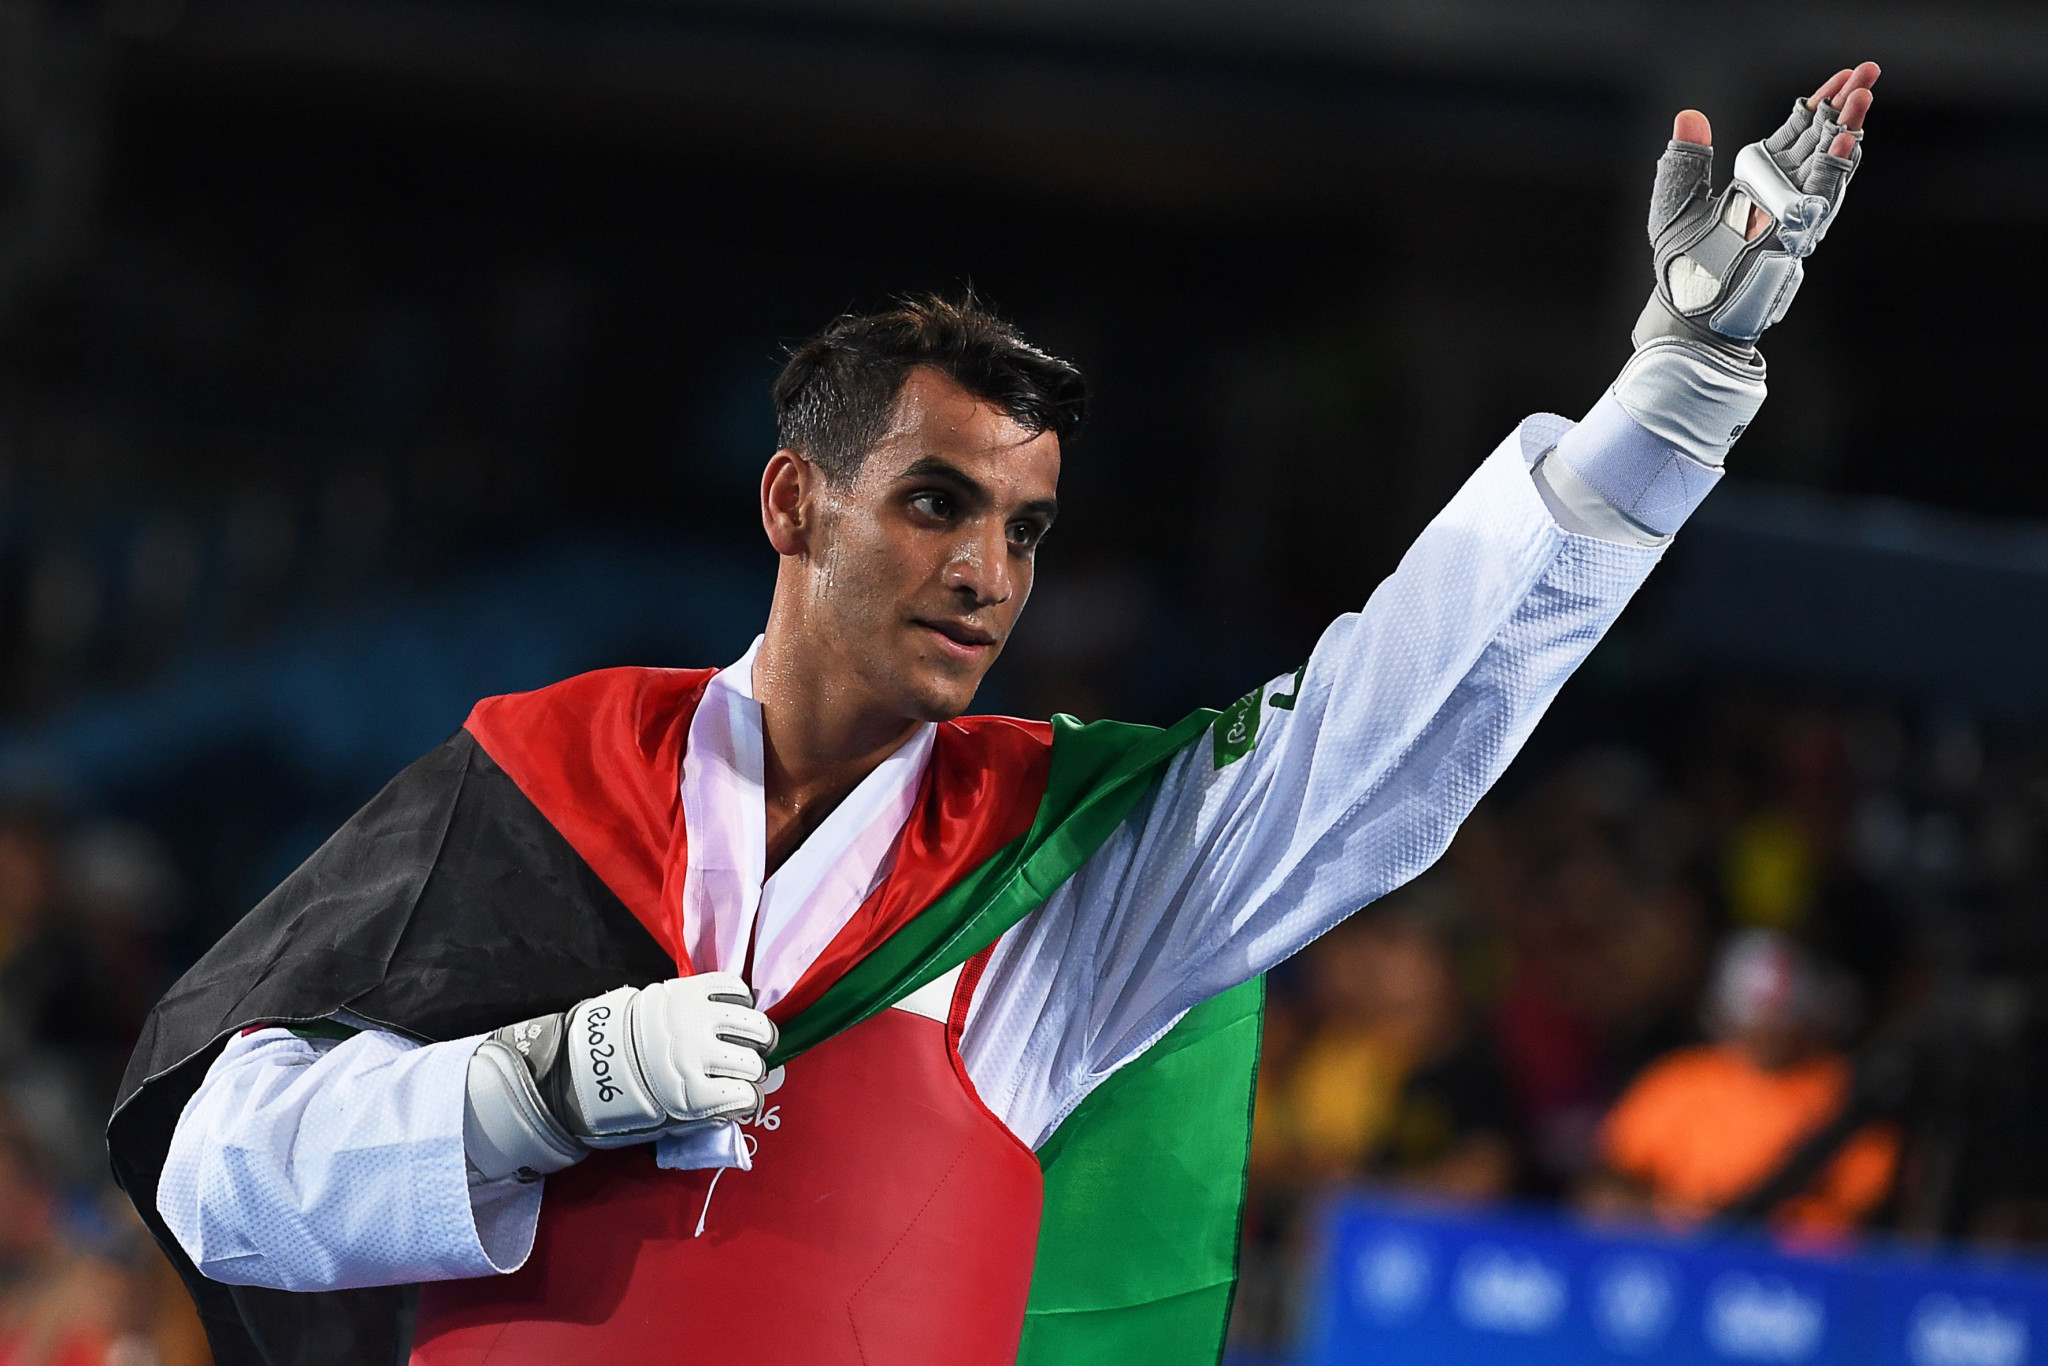 Ahmad Abu Ghaush won Jordan's first-ever Olympic medal when he struck gold at Rio 2016  ©Getty Images